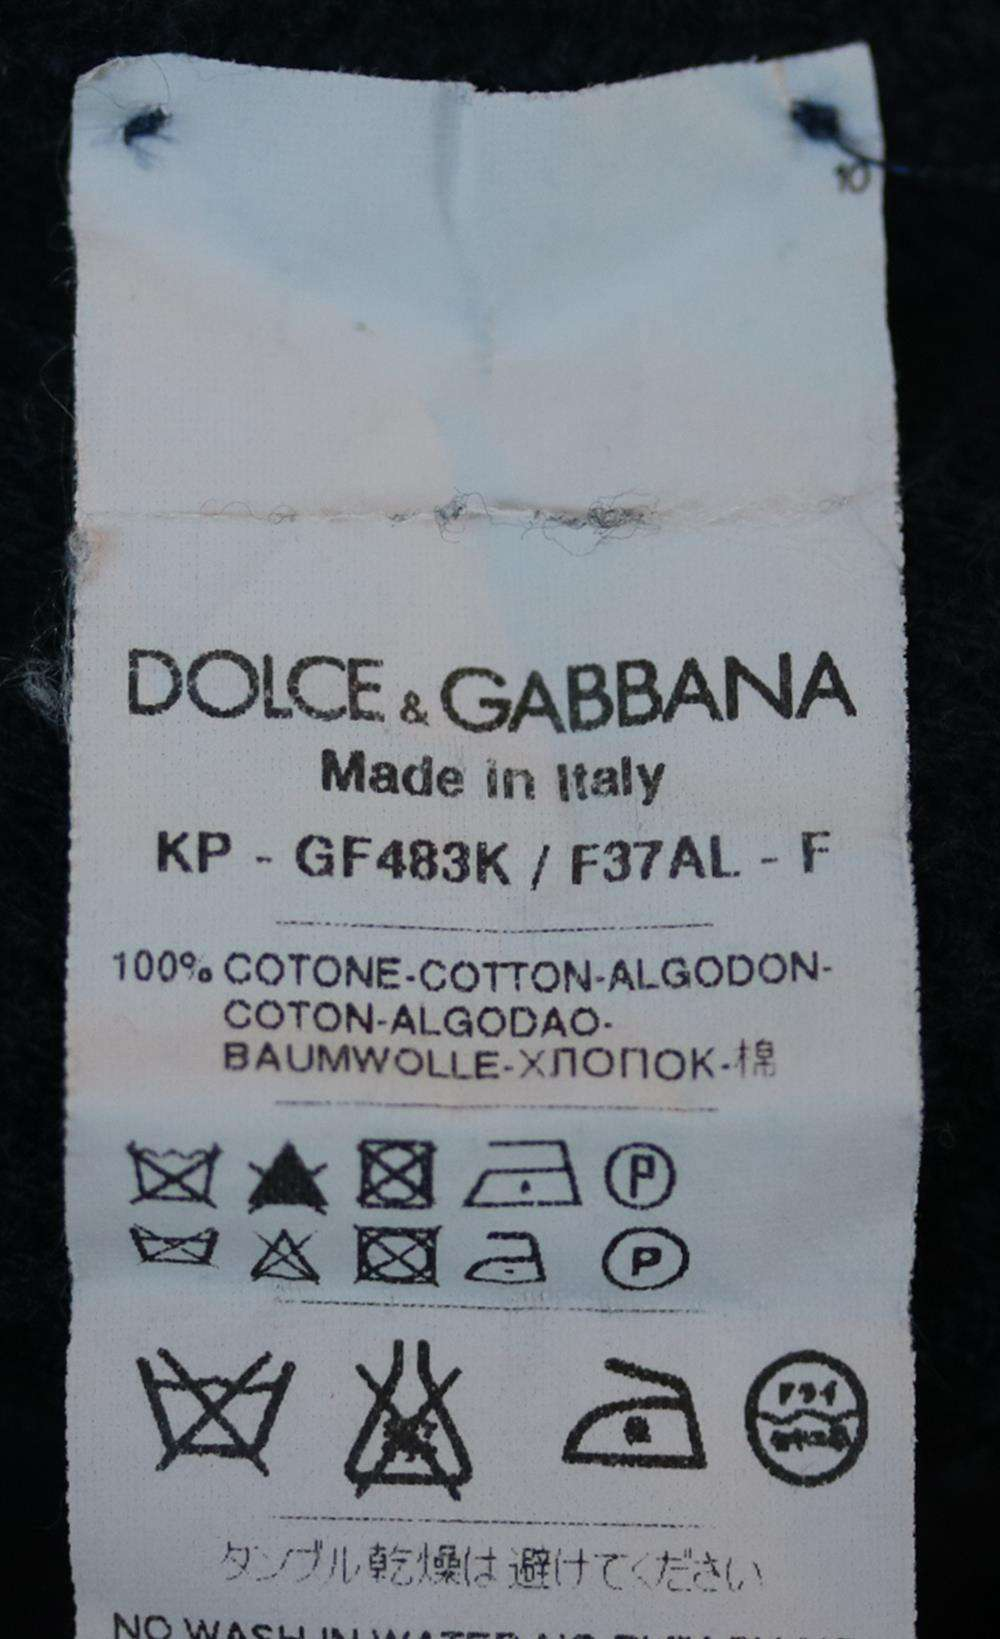 DOLCE AND GABBANA TEXTURED COTTON POLO SHIRT IT 46 UK/US 36